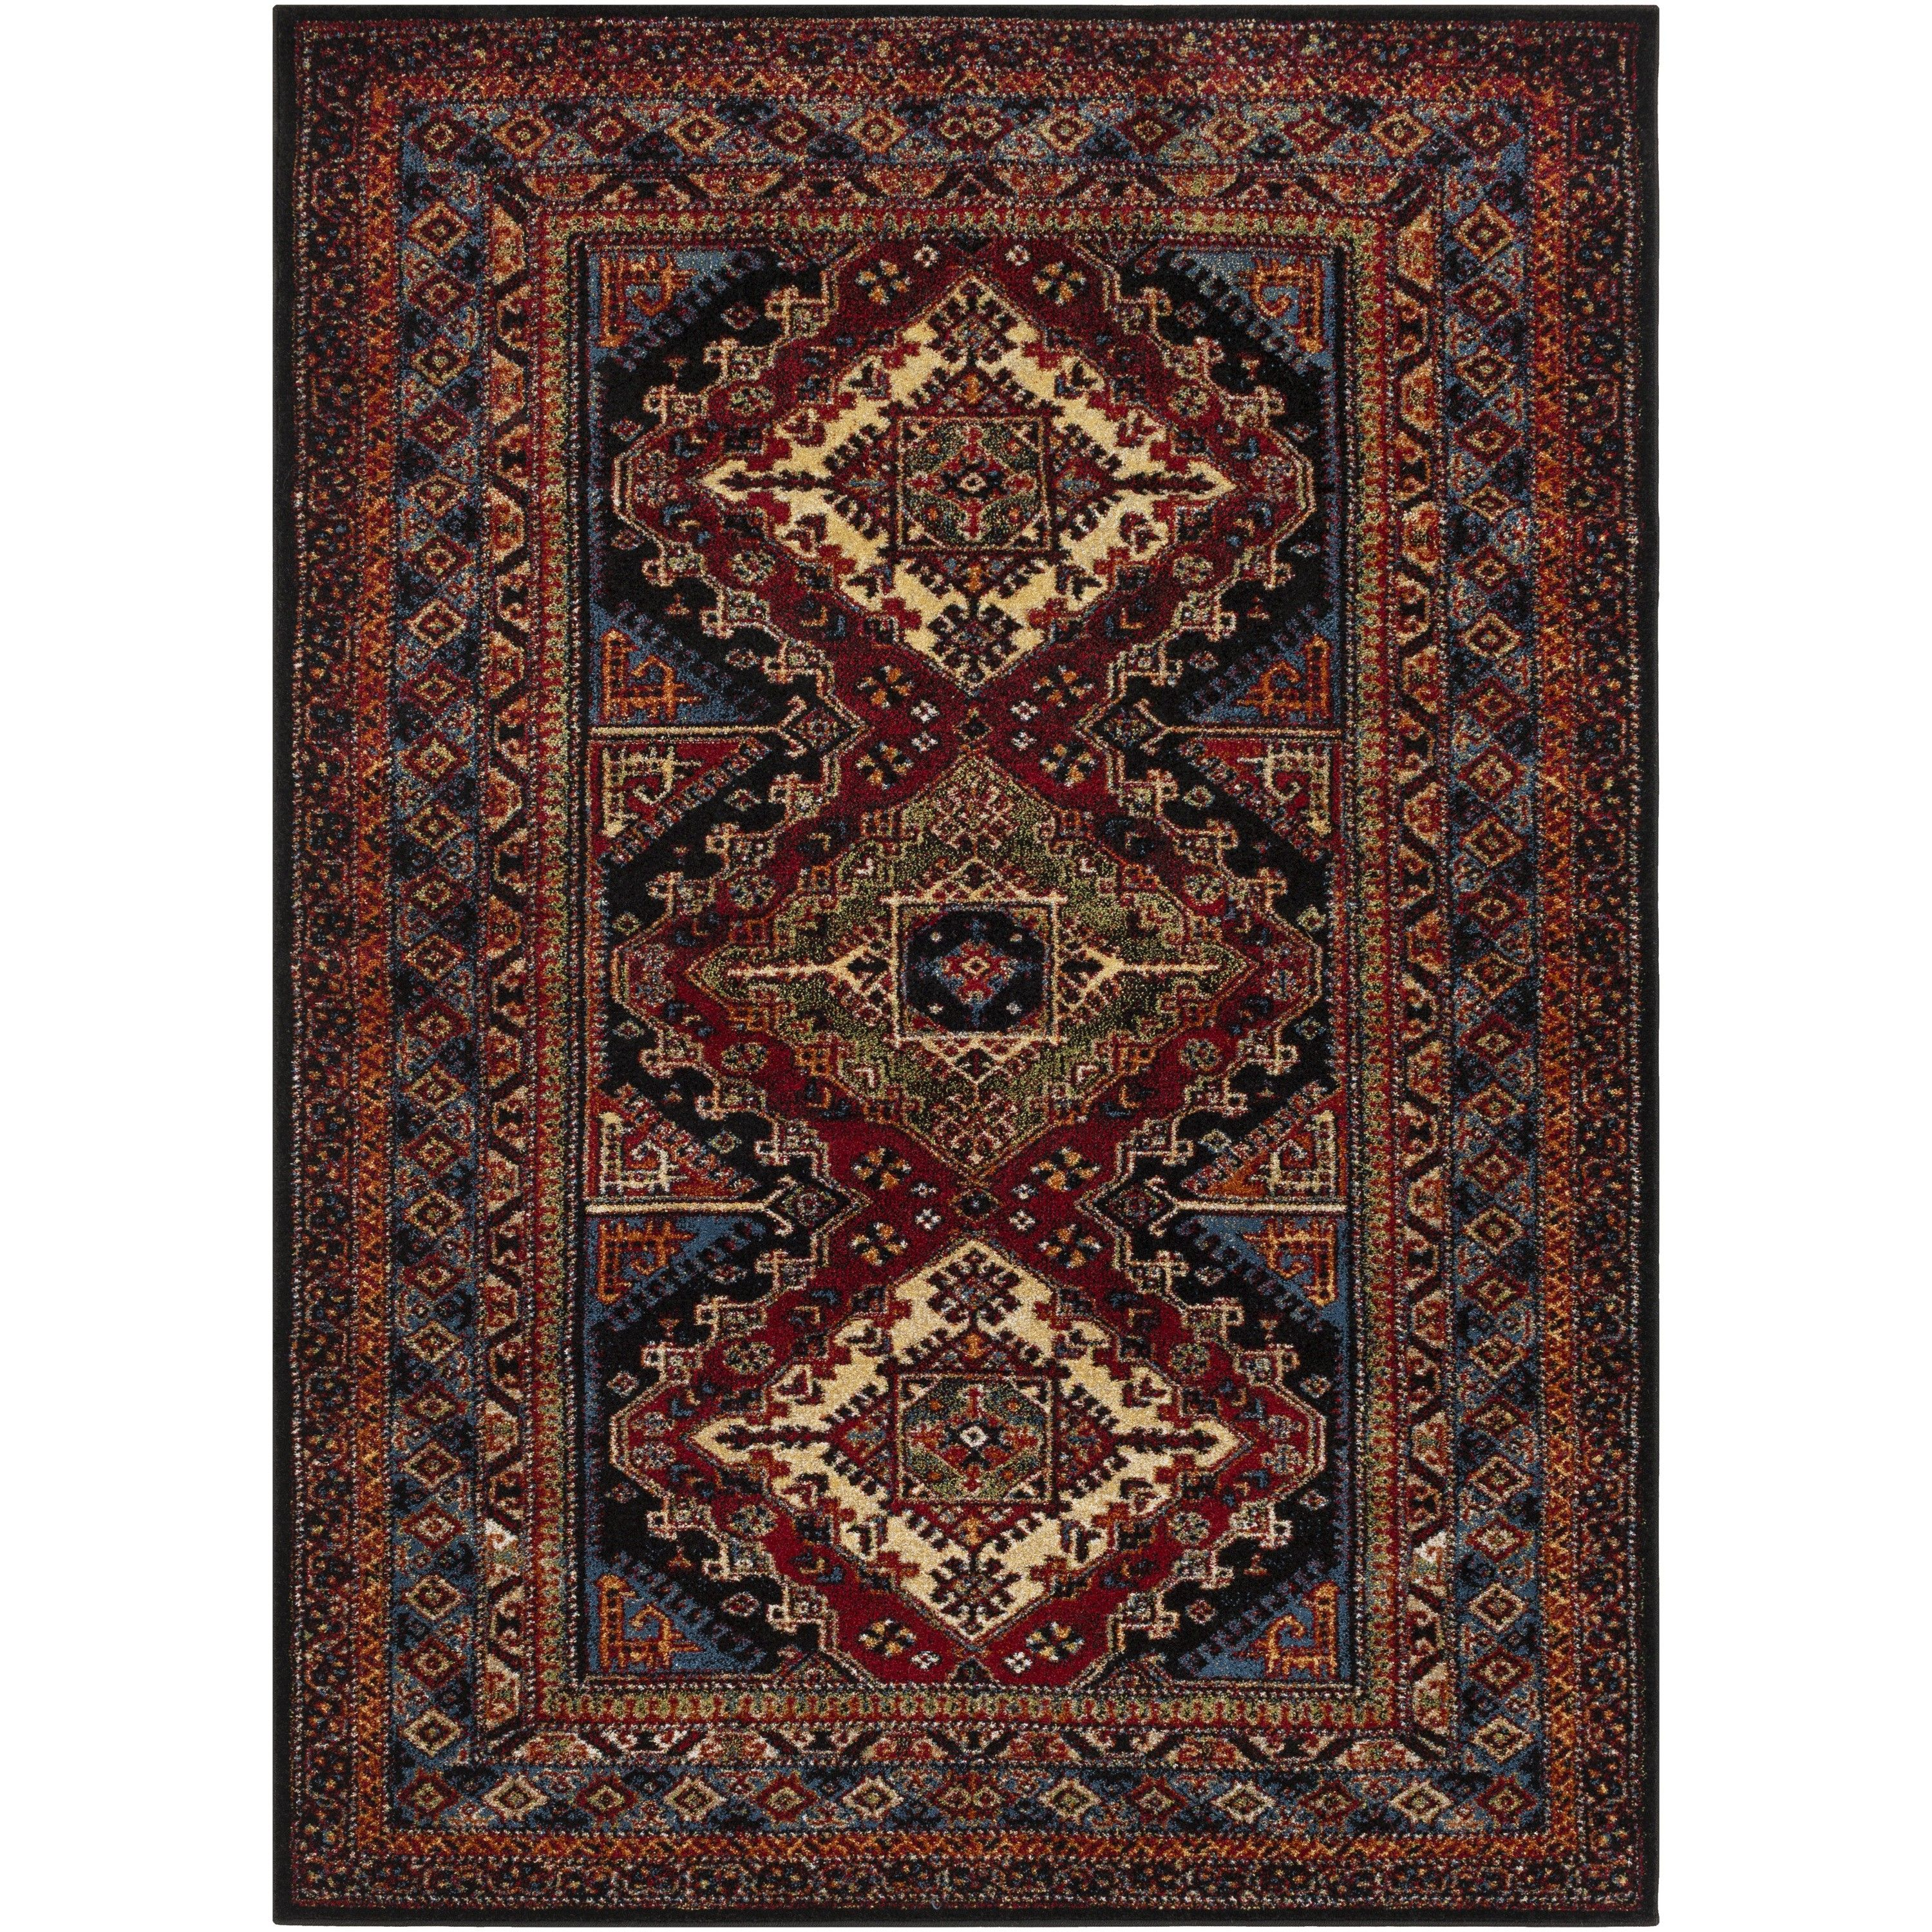 Rich Moody Hues And A Classic Traditional Motif Make Our Asme Rug A Showstopper In Any Living Space We Love Black Area Rugs Area Rugs Traditional Area Rugs